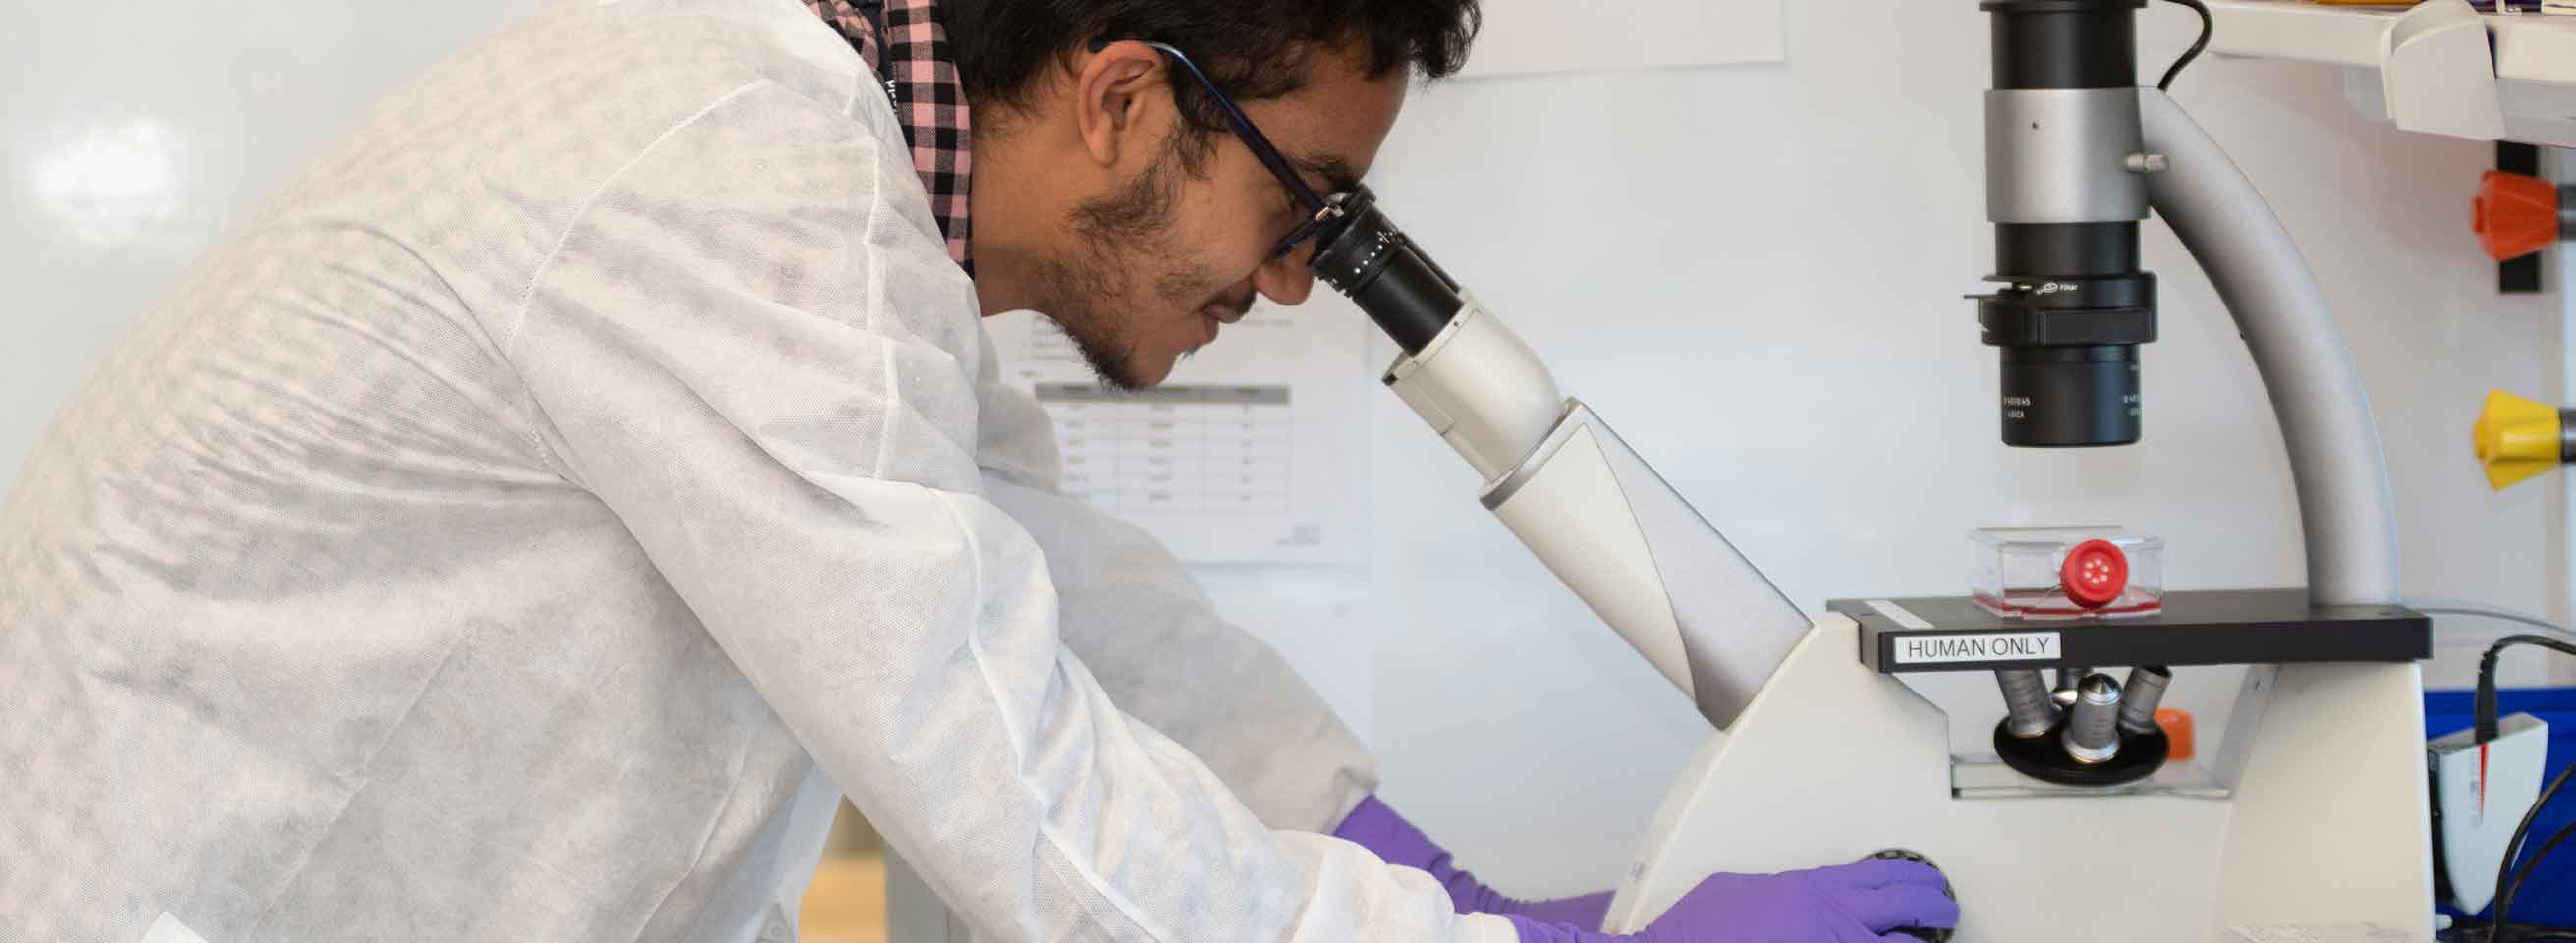 Summer Intern at GW School of Medicine and Health Sciences using a microscope